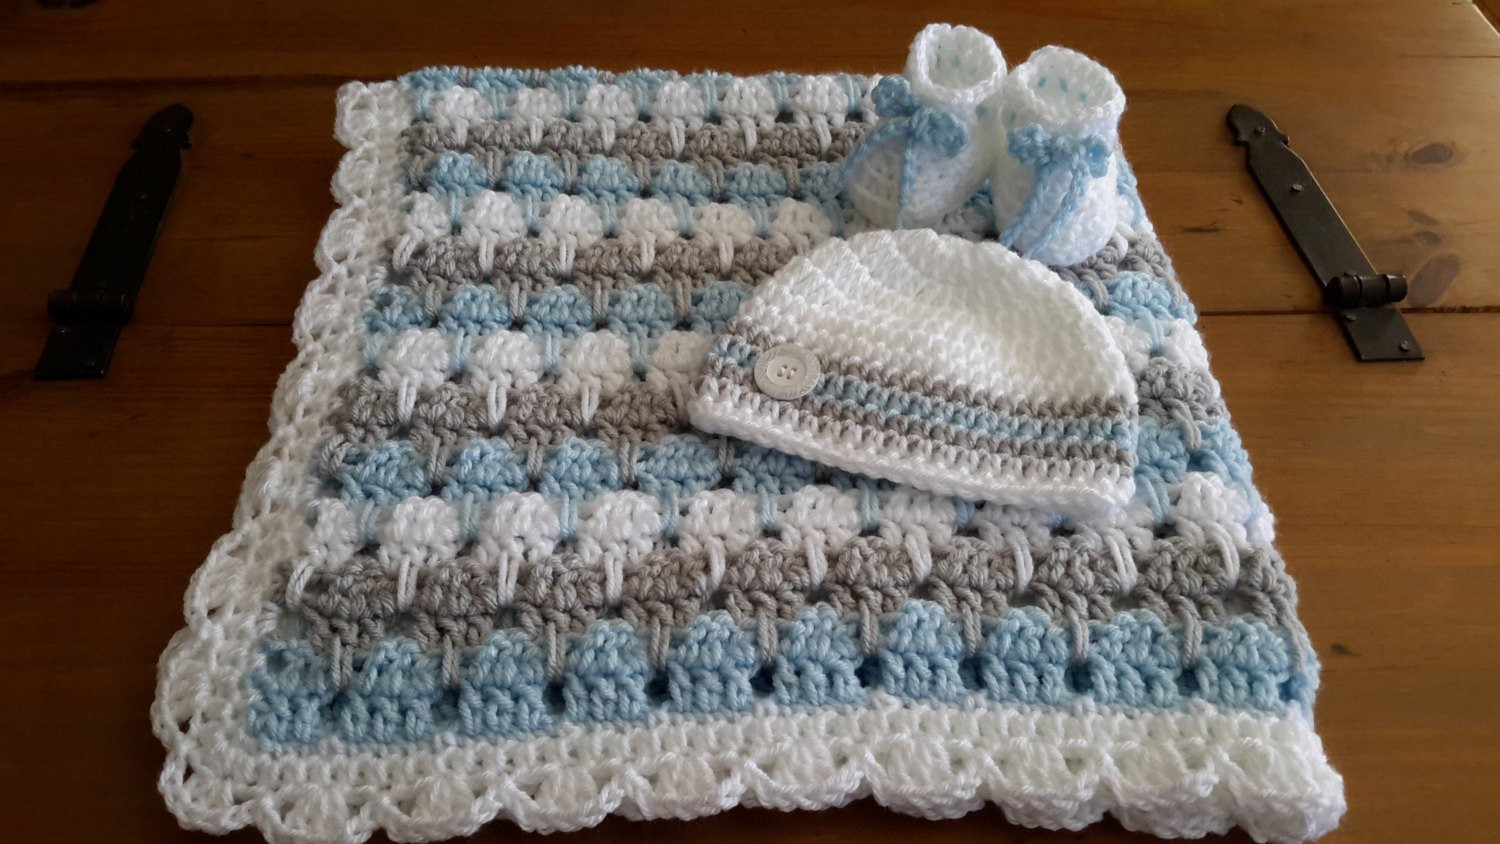 Baby Boy Crochet Blanket Patterns Lovely Baby Boy Blanket Crochet Stripe Crochet Blanket Afghan Of Baby Boy Crochet Blanket Patterns Lovely Navy and Teal for A Baby Boy